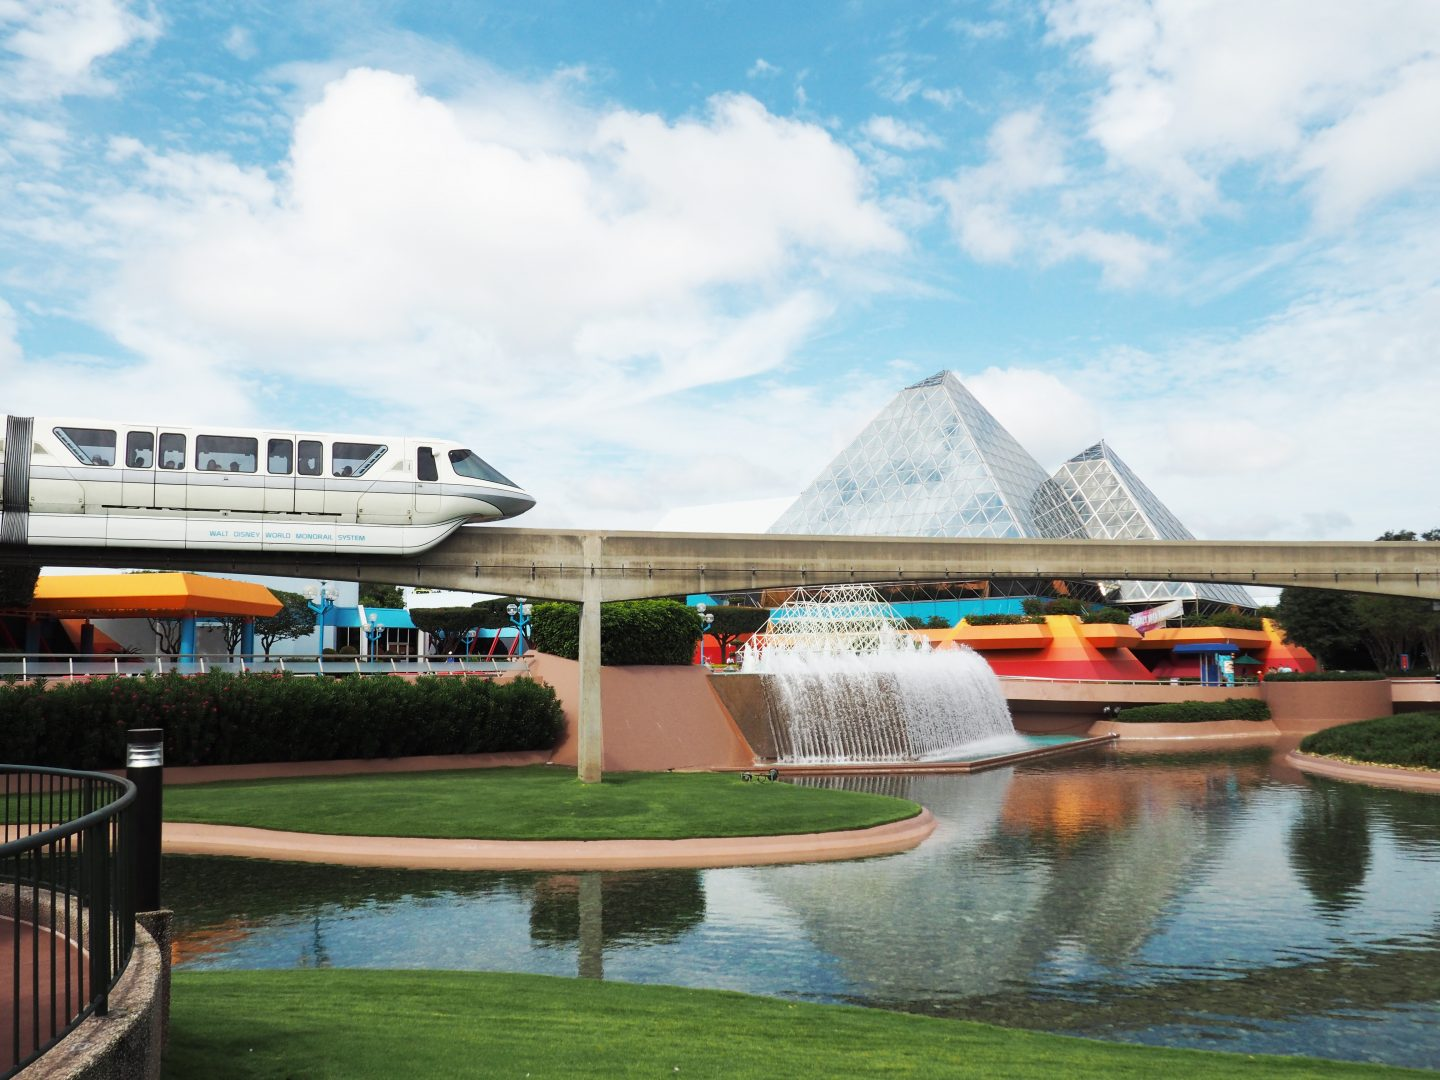 Monorail, disney monorail, disney transportation,